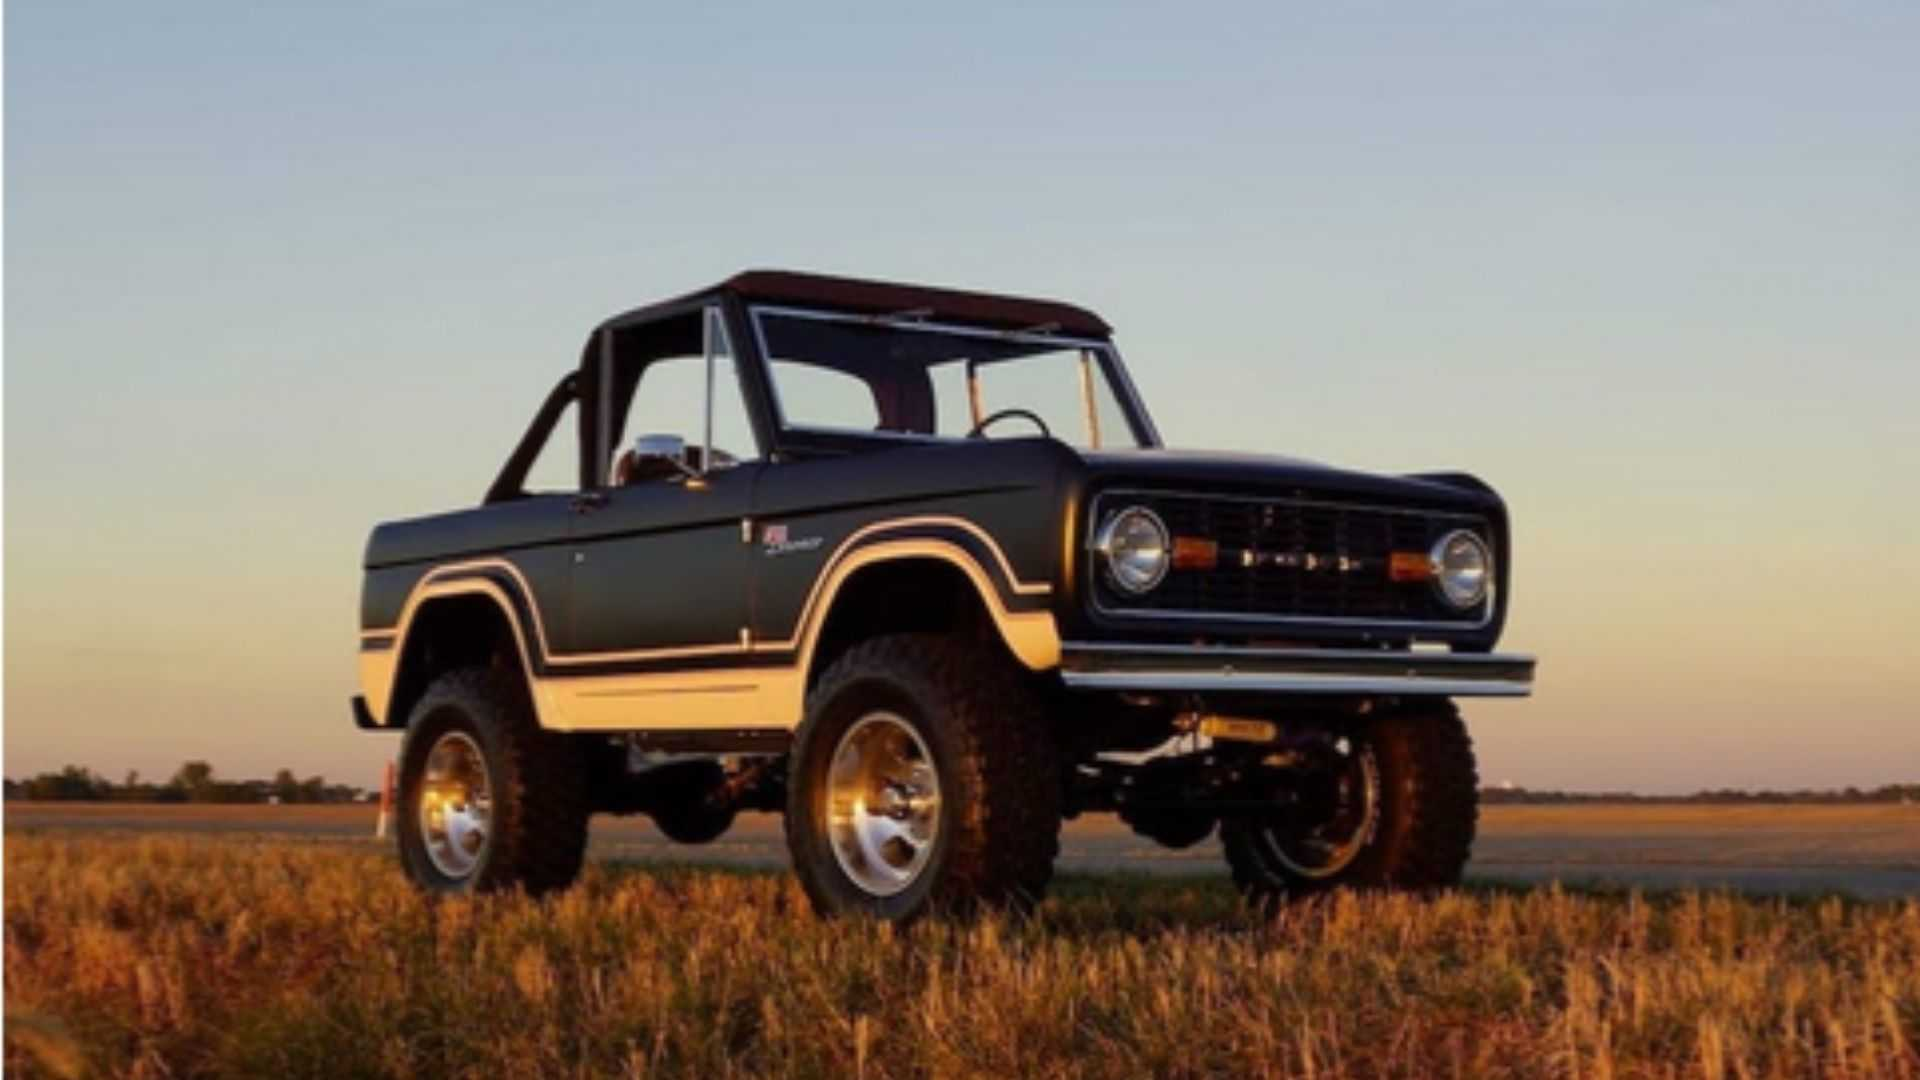 Gateway Bronco Will Build The Ford Bronco Of Your Dreams ...